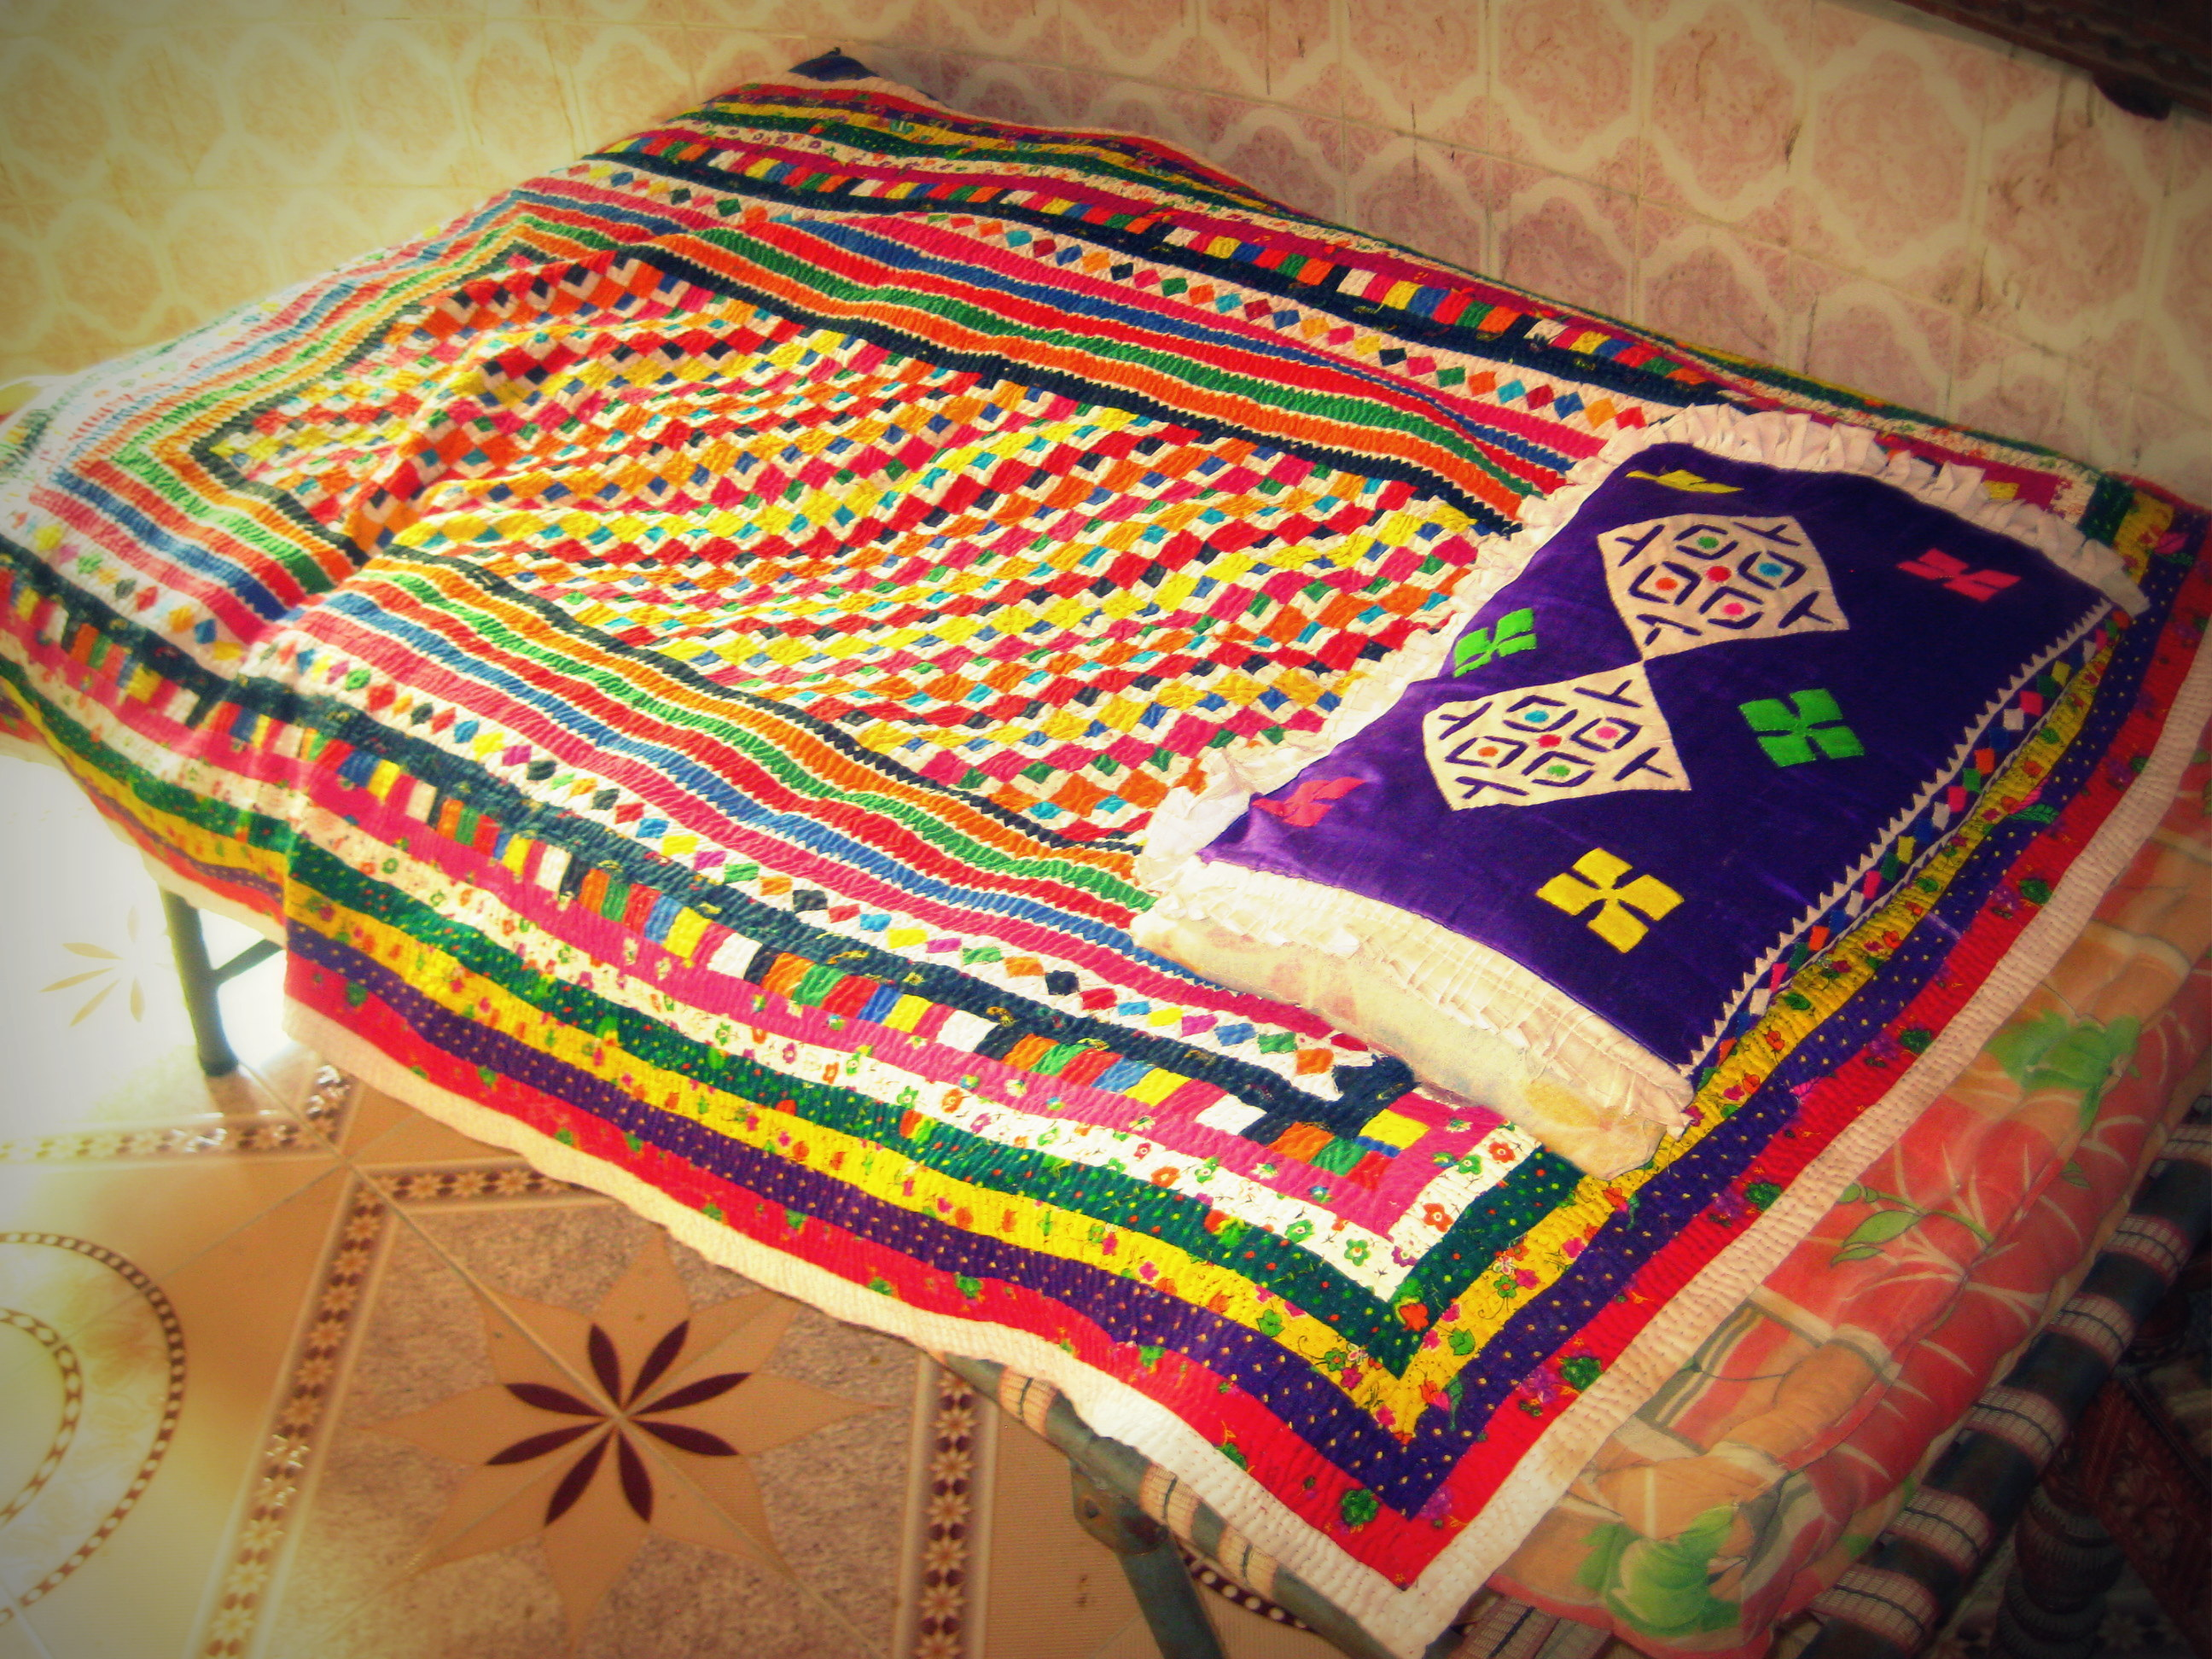 Embroidery of the Jats commonly called Kambri Bharat.